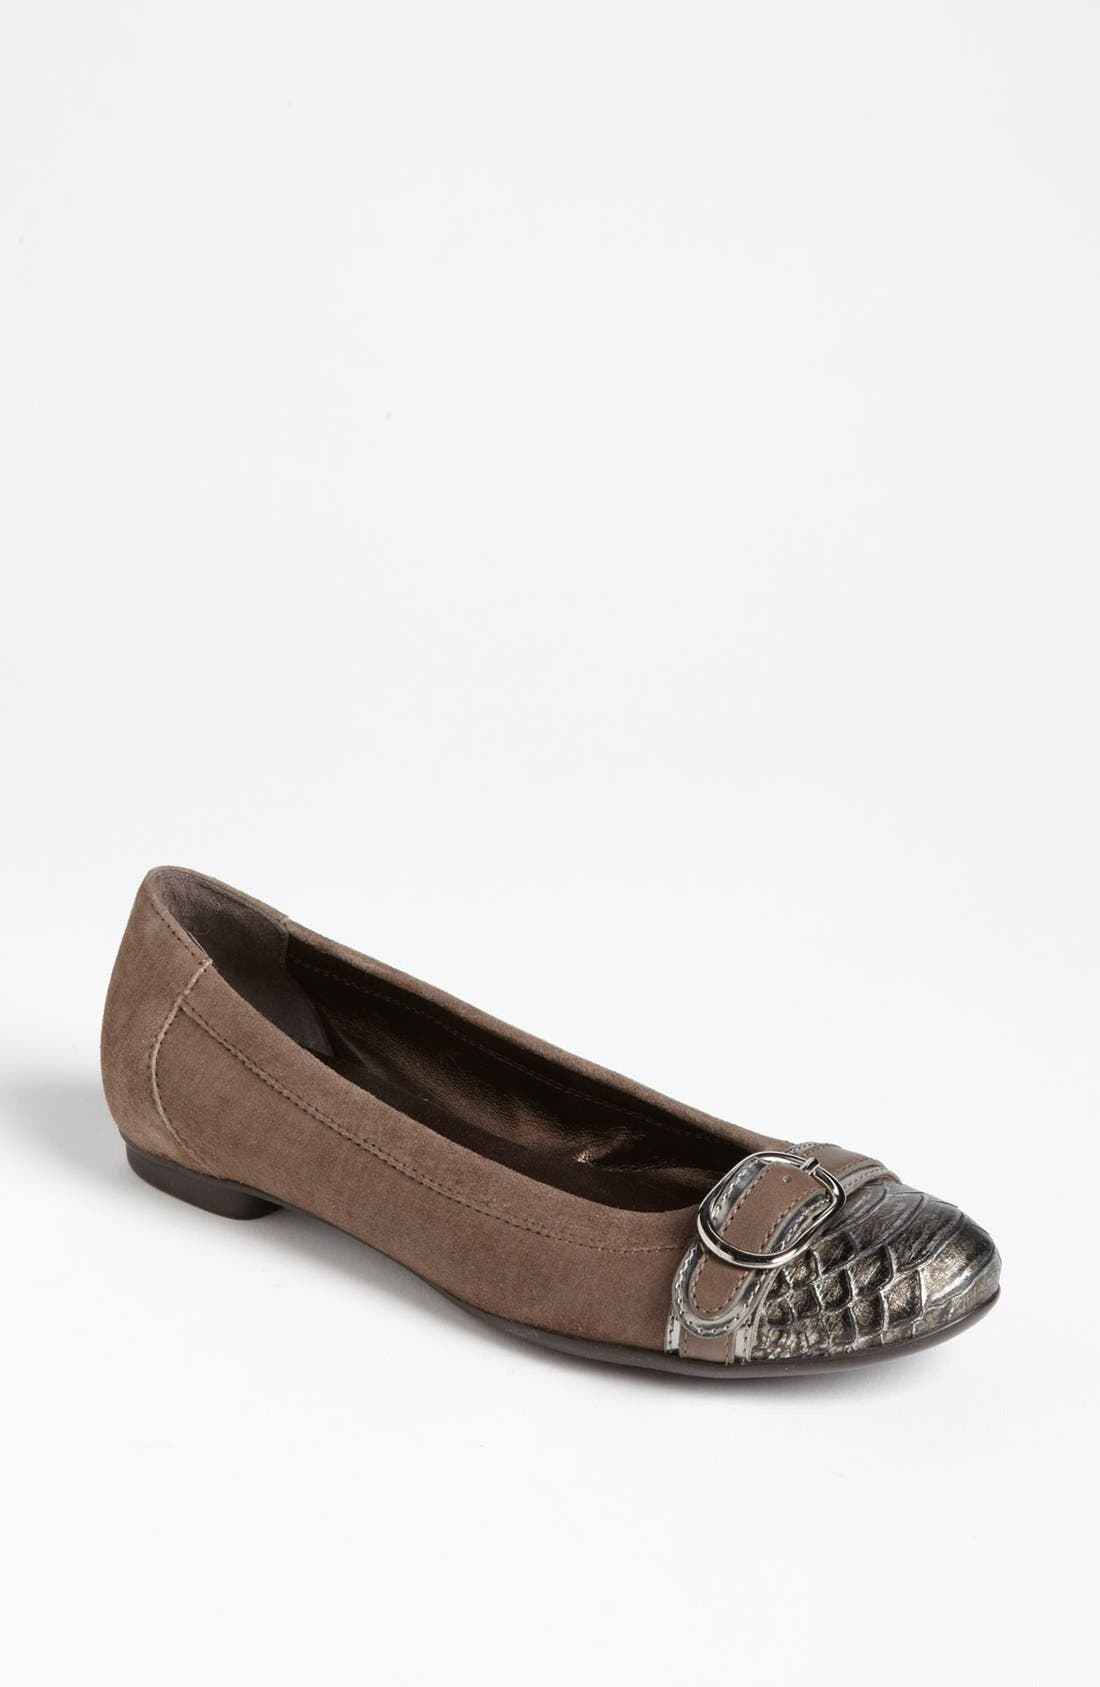 Alternate Image 1 Selected - Attilio Giusti Leombruni Buckle Ballet Flat